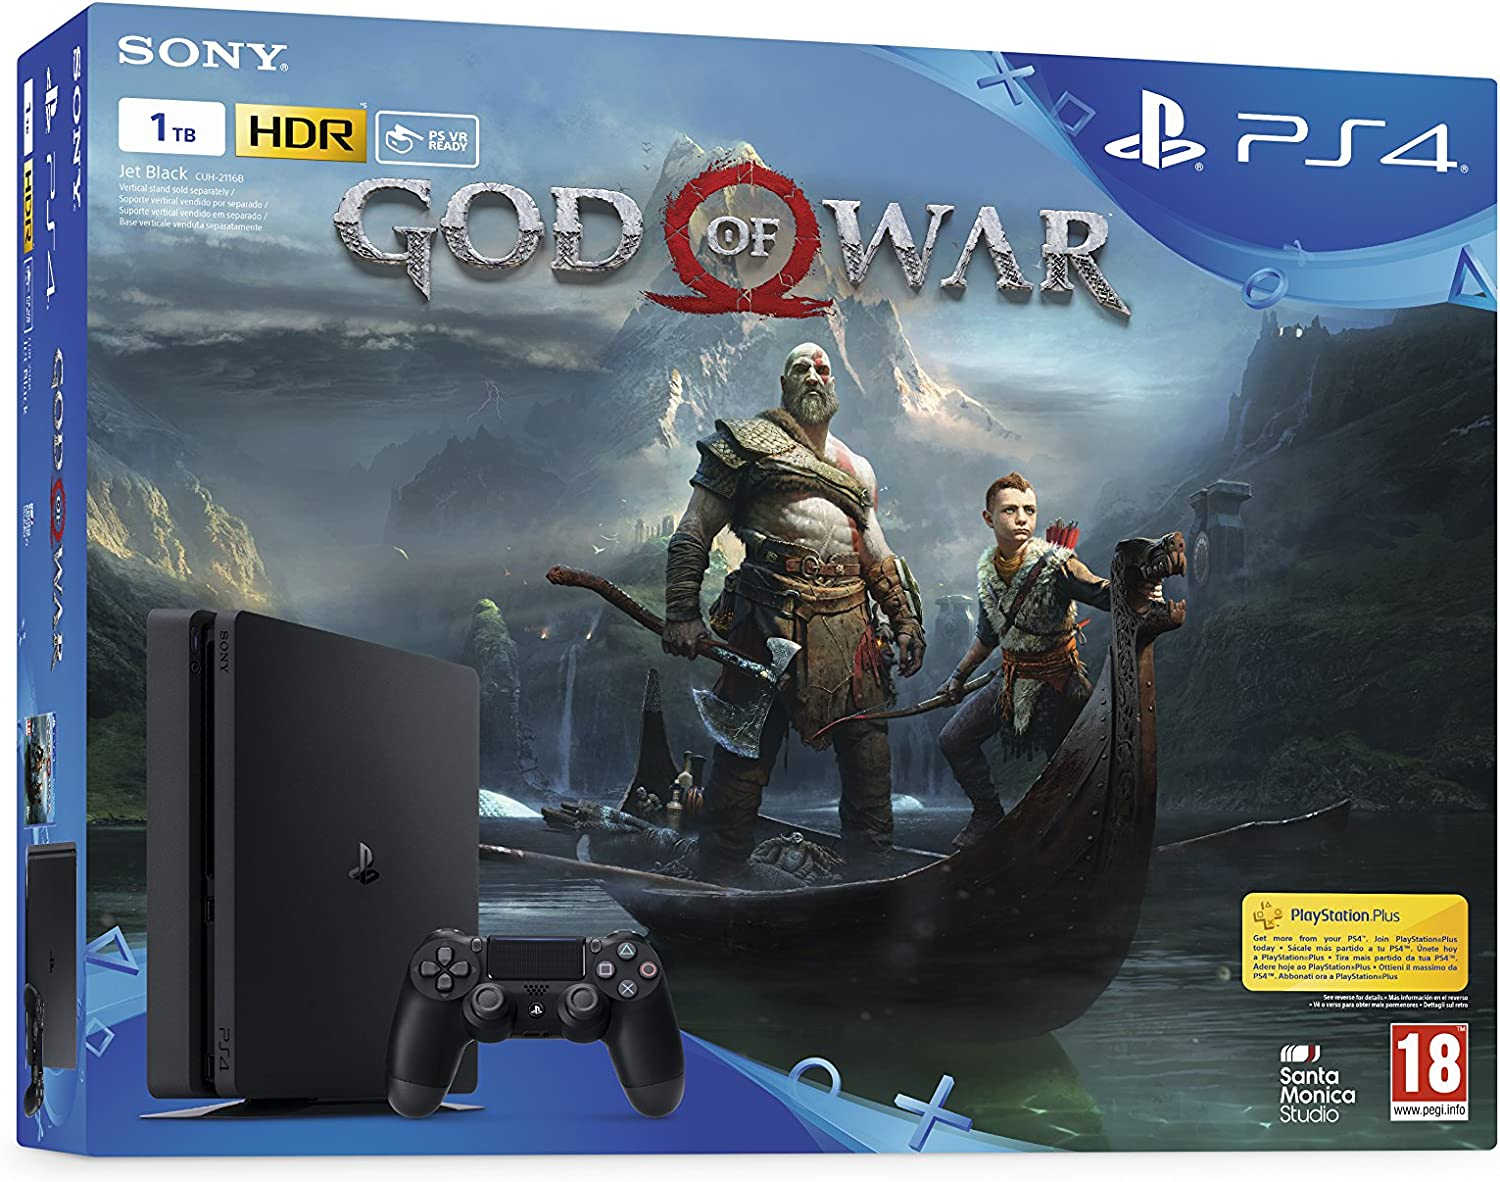 PlayStation 4 (PS4) - Consola de 1 TB + God of War: Amazon.es: Videojuegos